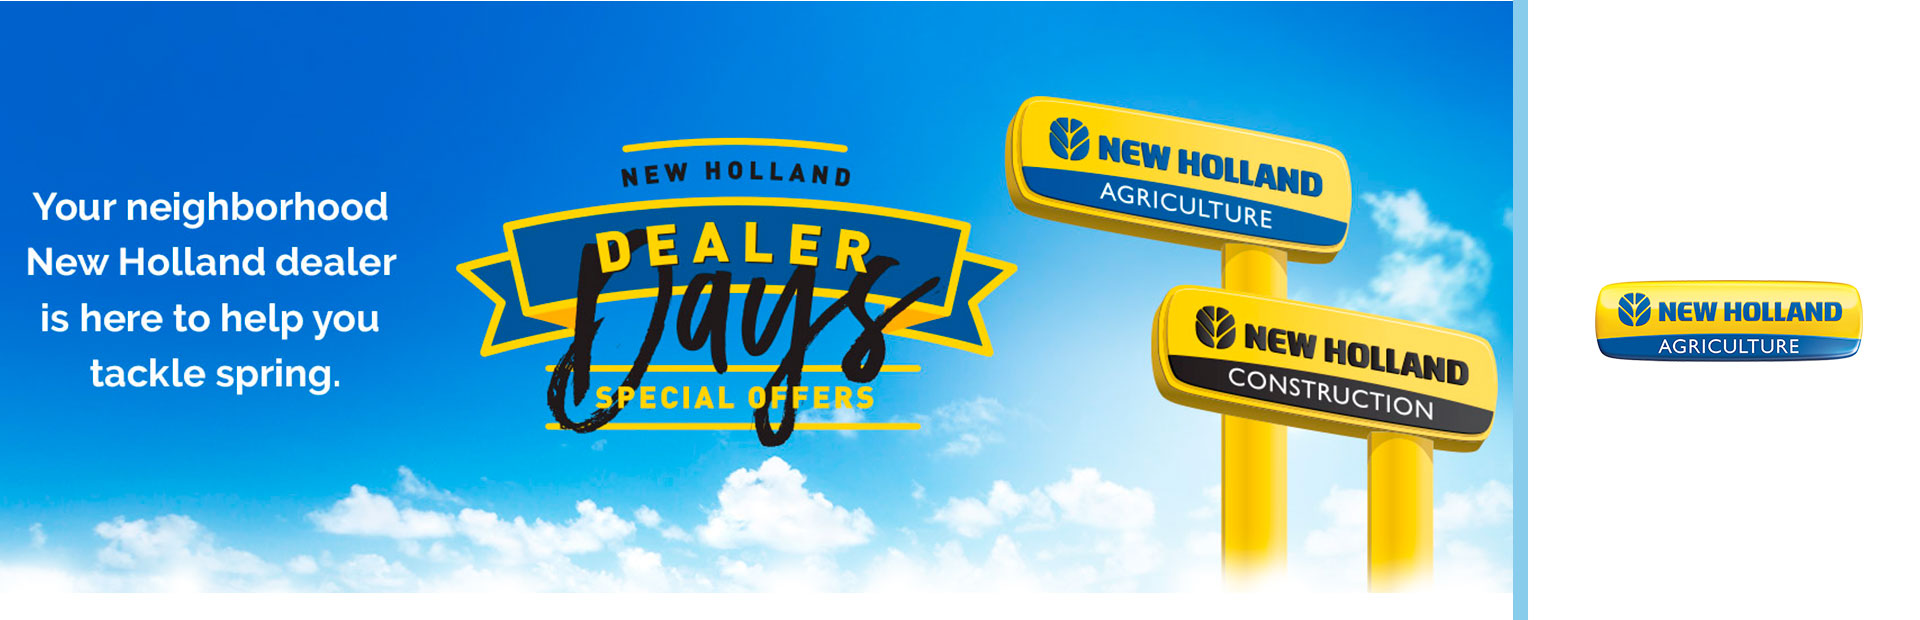 New Holland Agriculture: New Holland Dealer Days